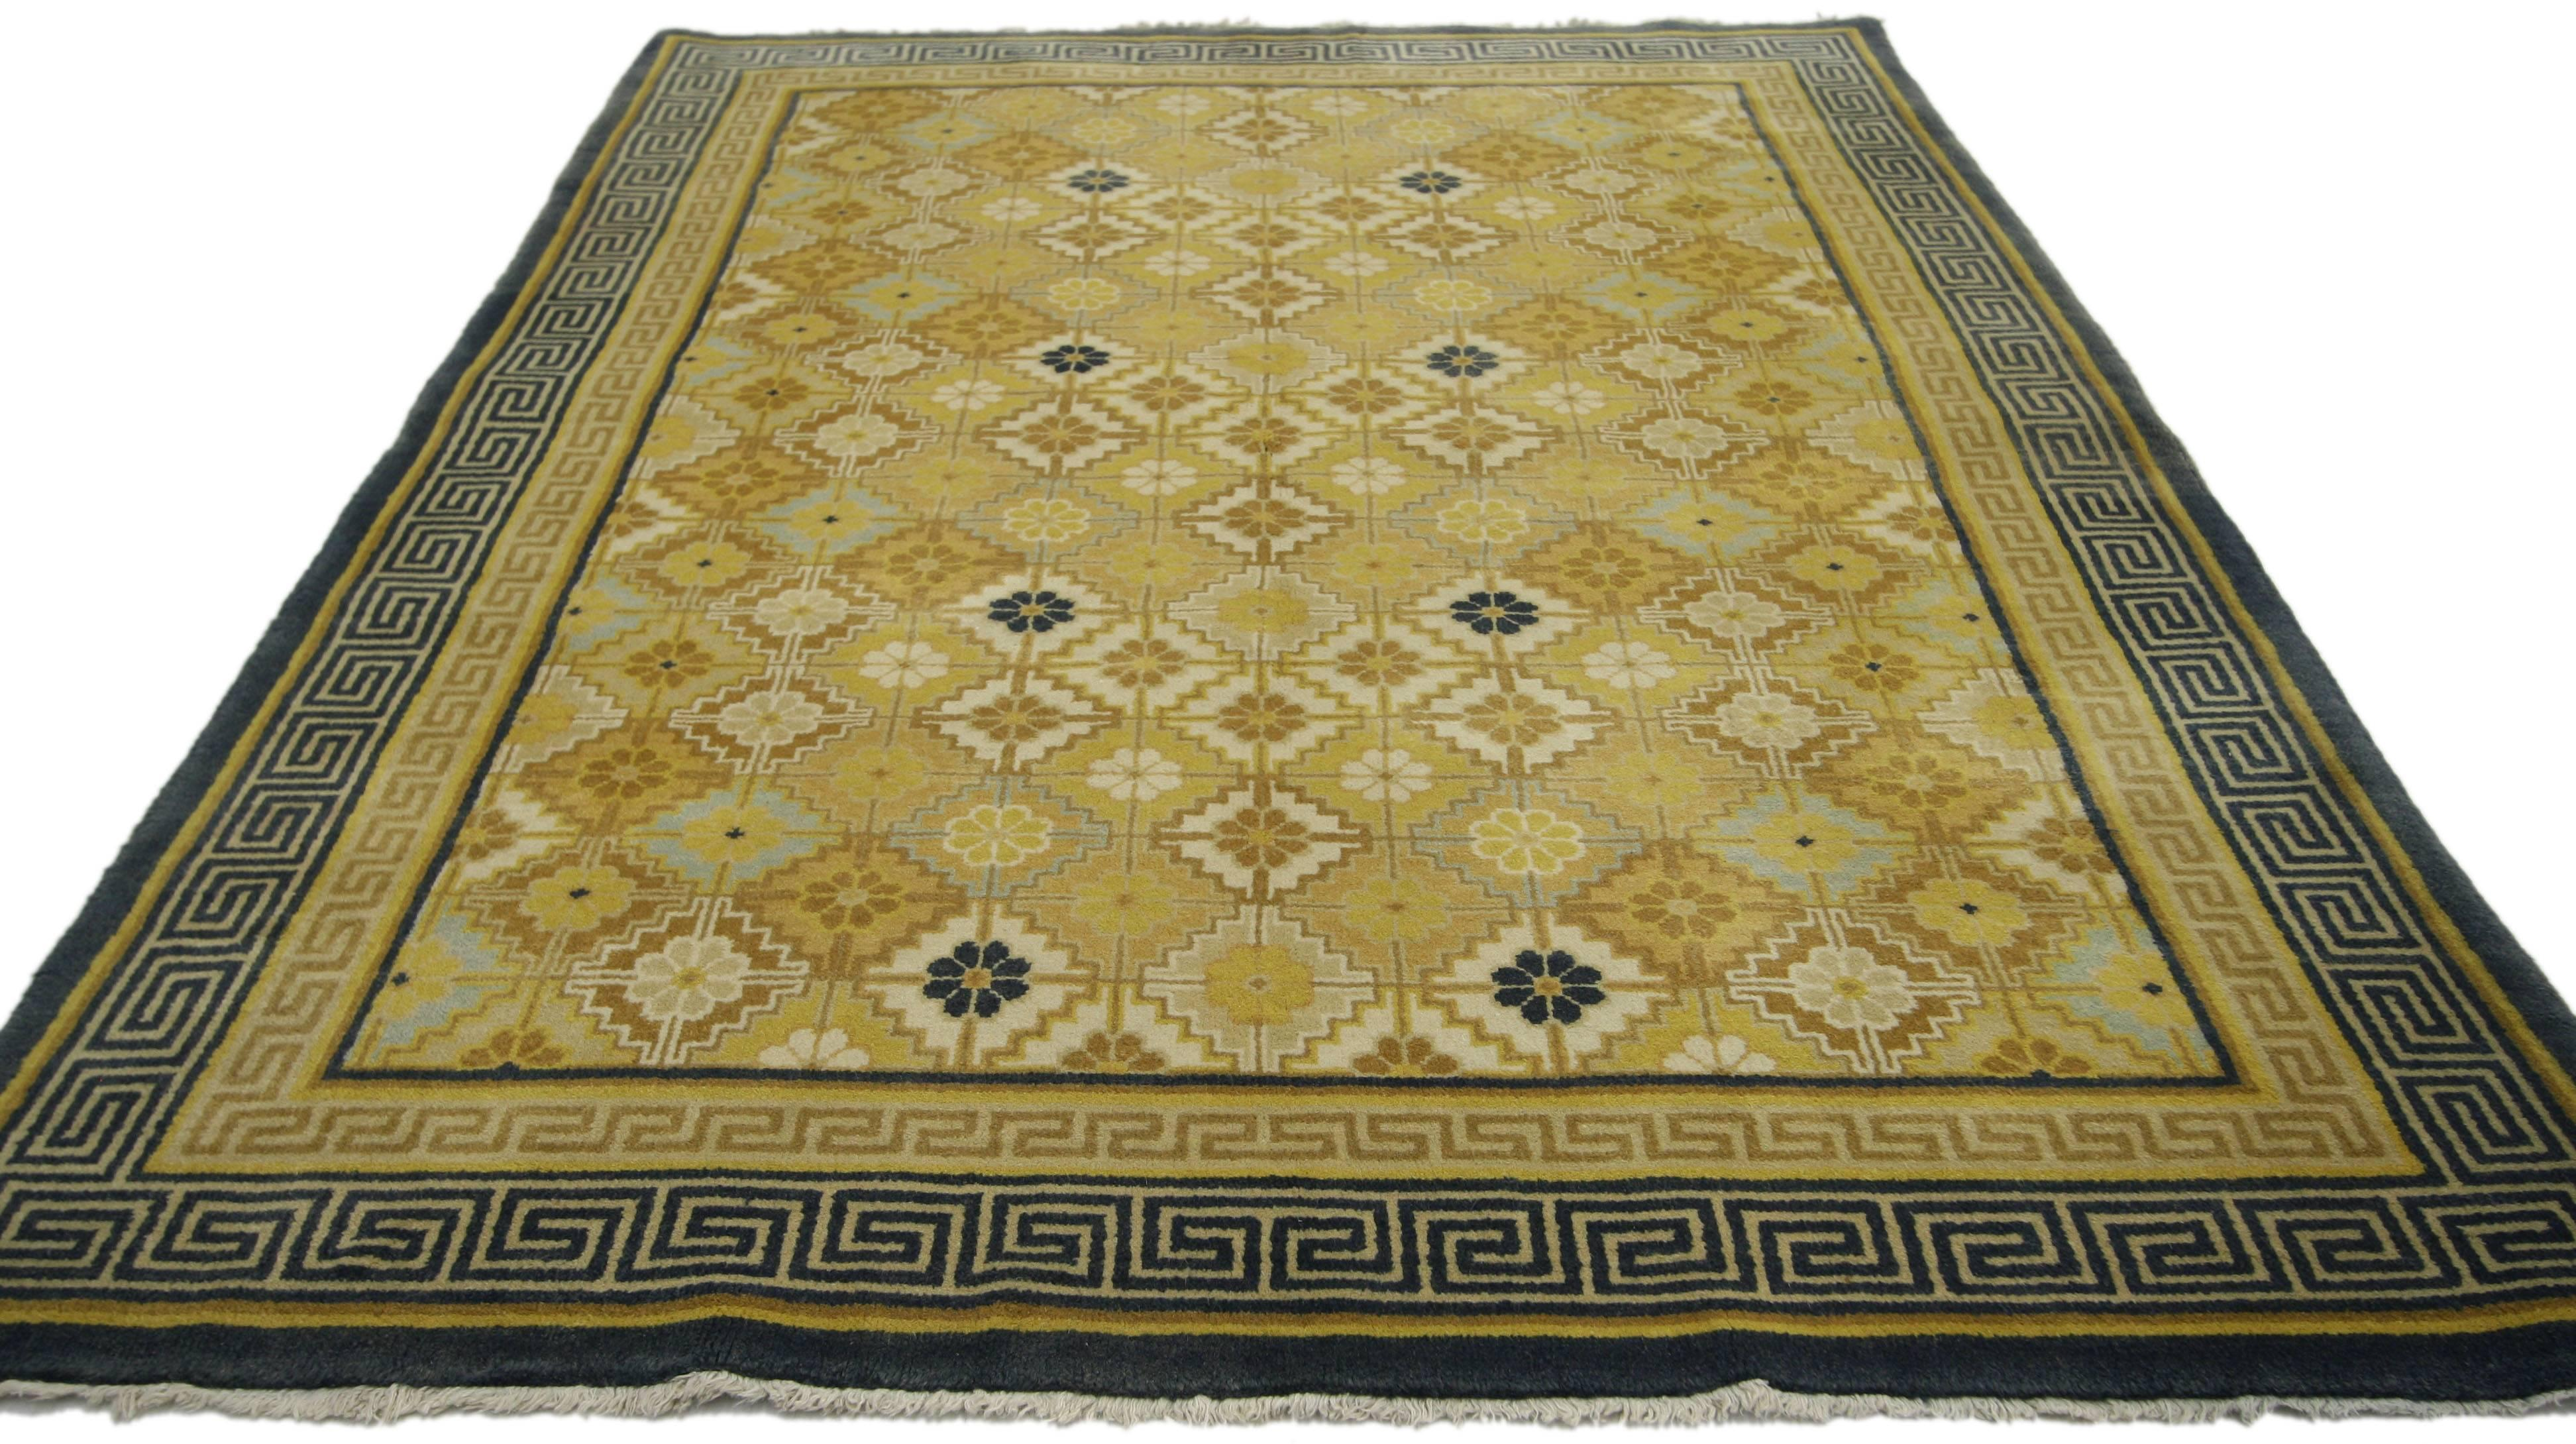 Vintage Chinese Rug With Modern Style With Double Greek Key Border For Sale At 1stdibs